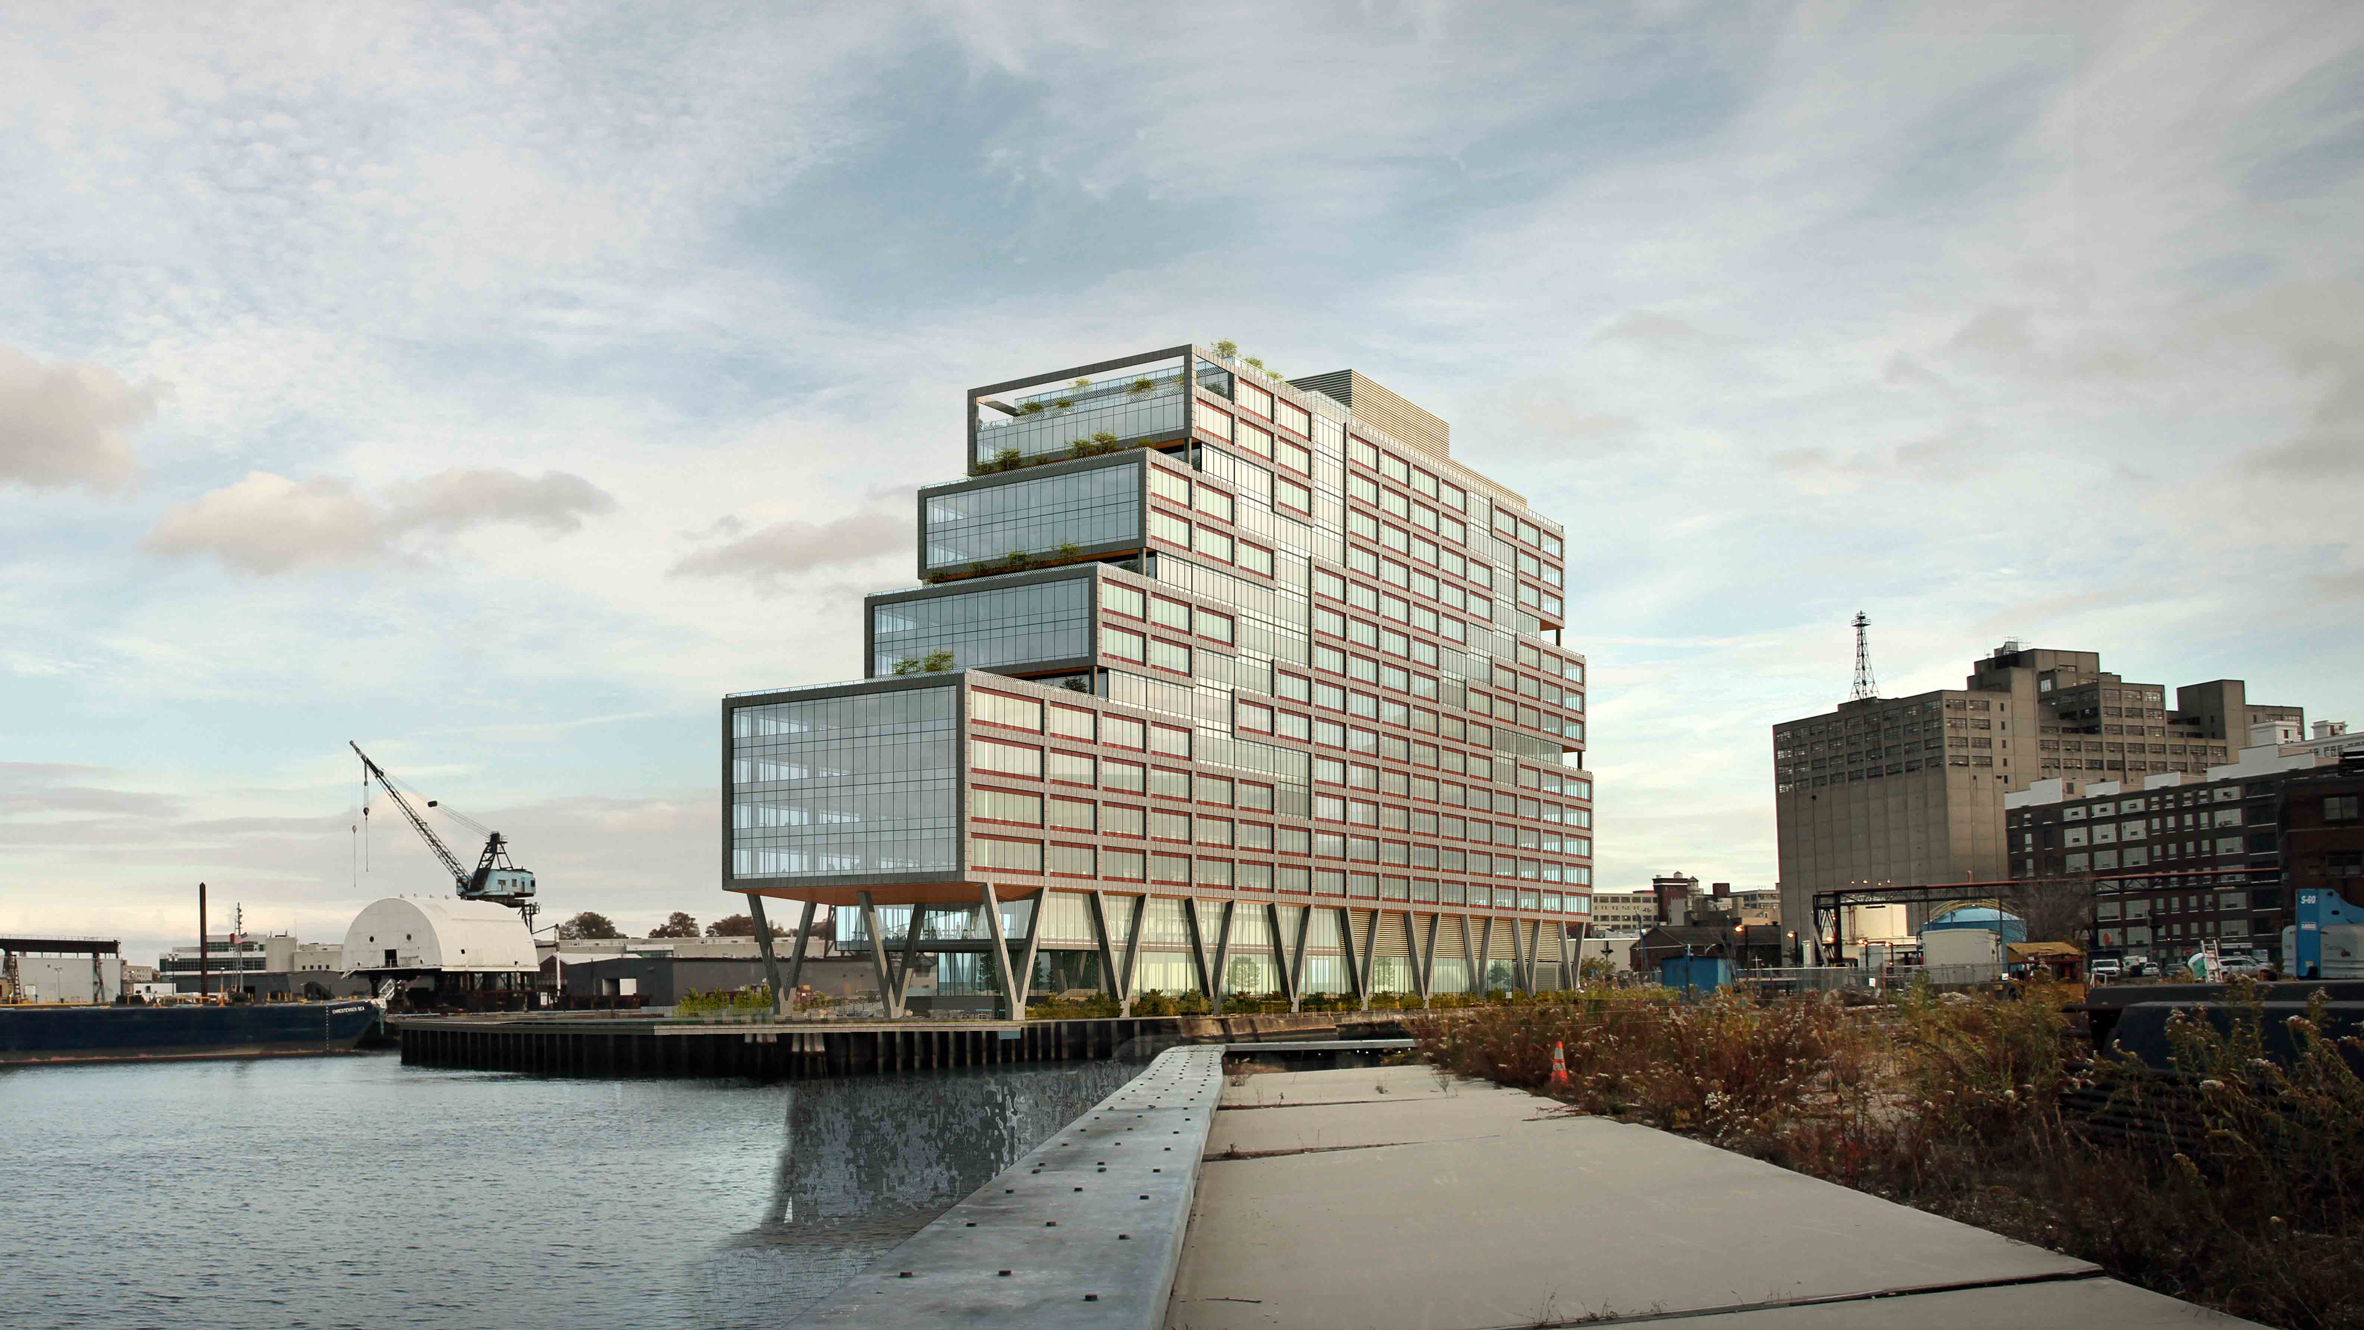 S9 Architecture Designs Huge Co Working Building For Brooklyn Navy Yard